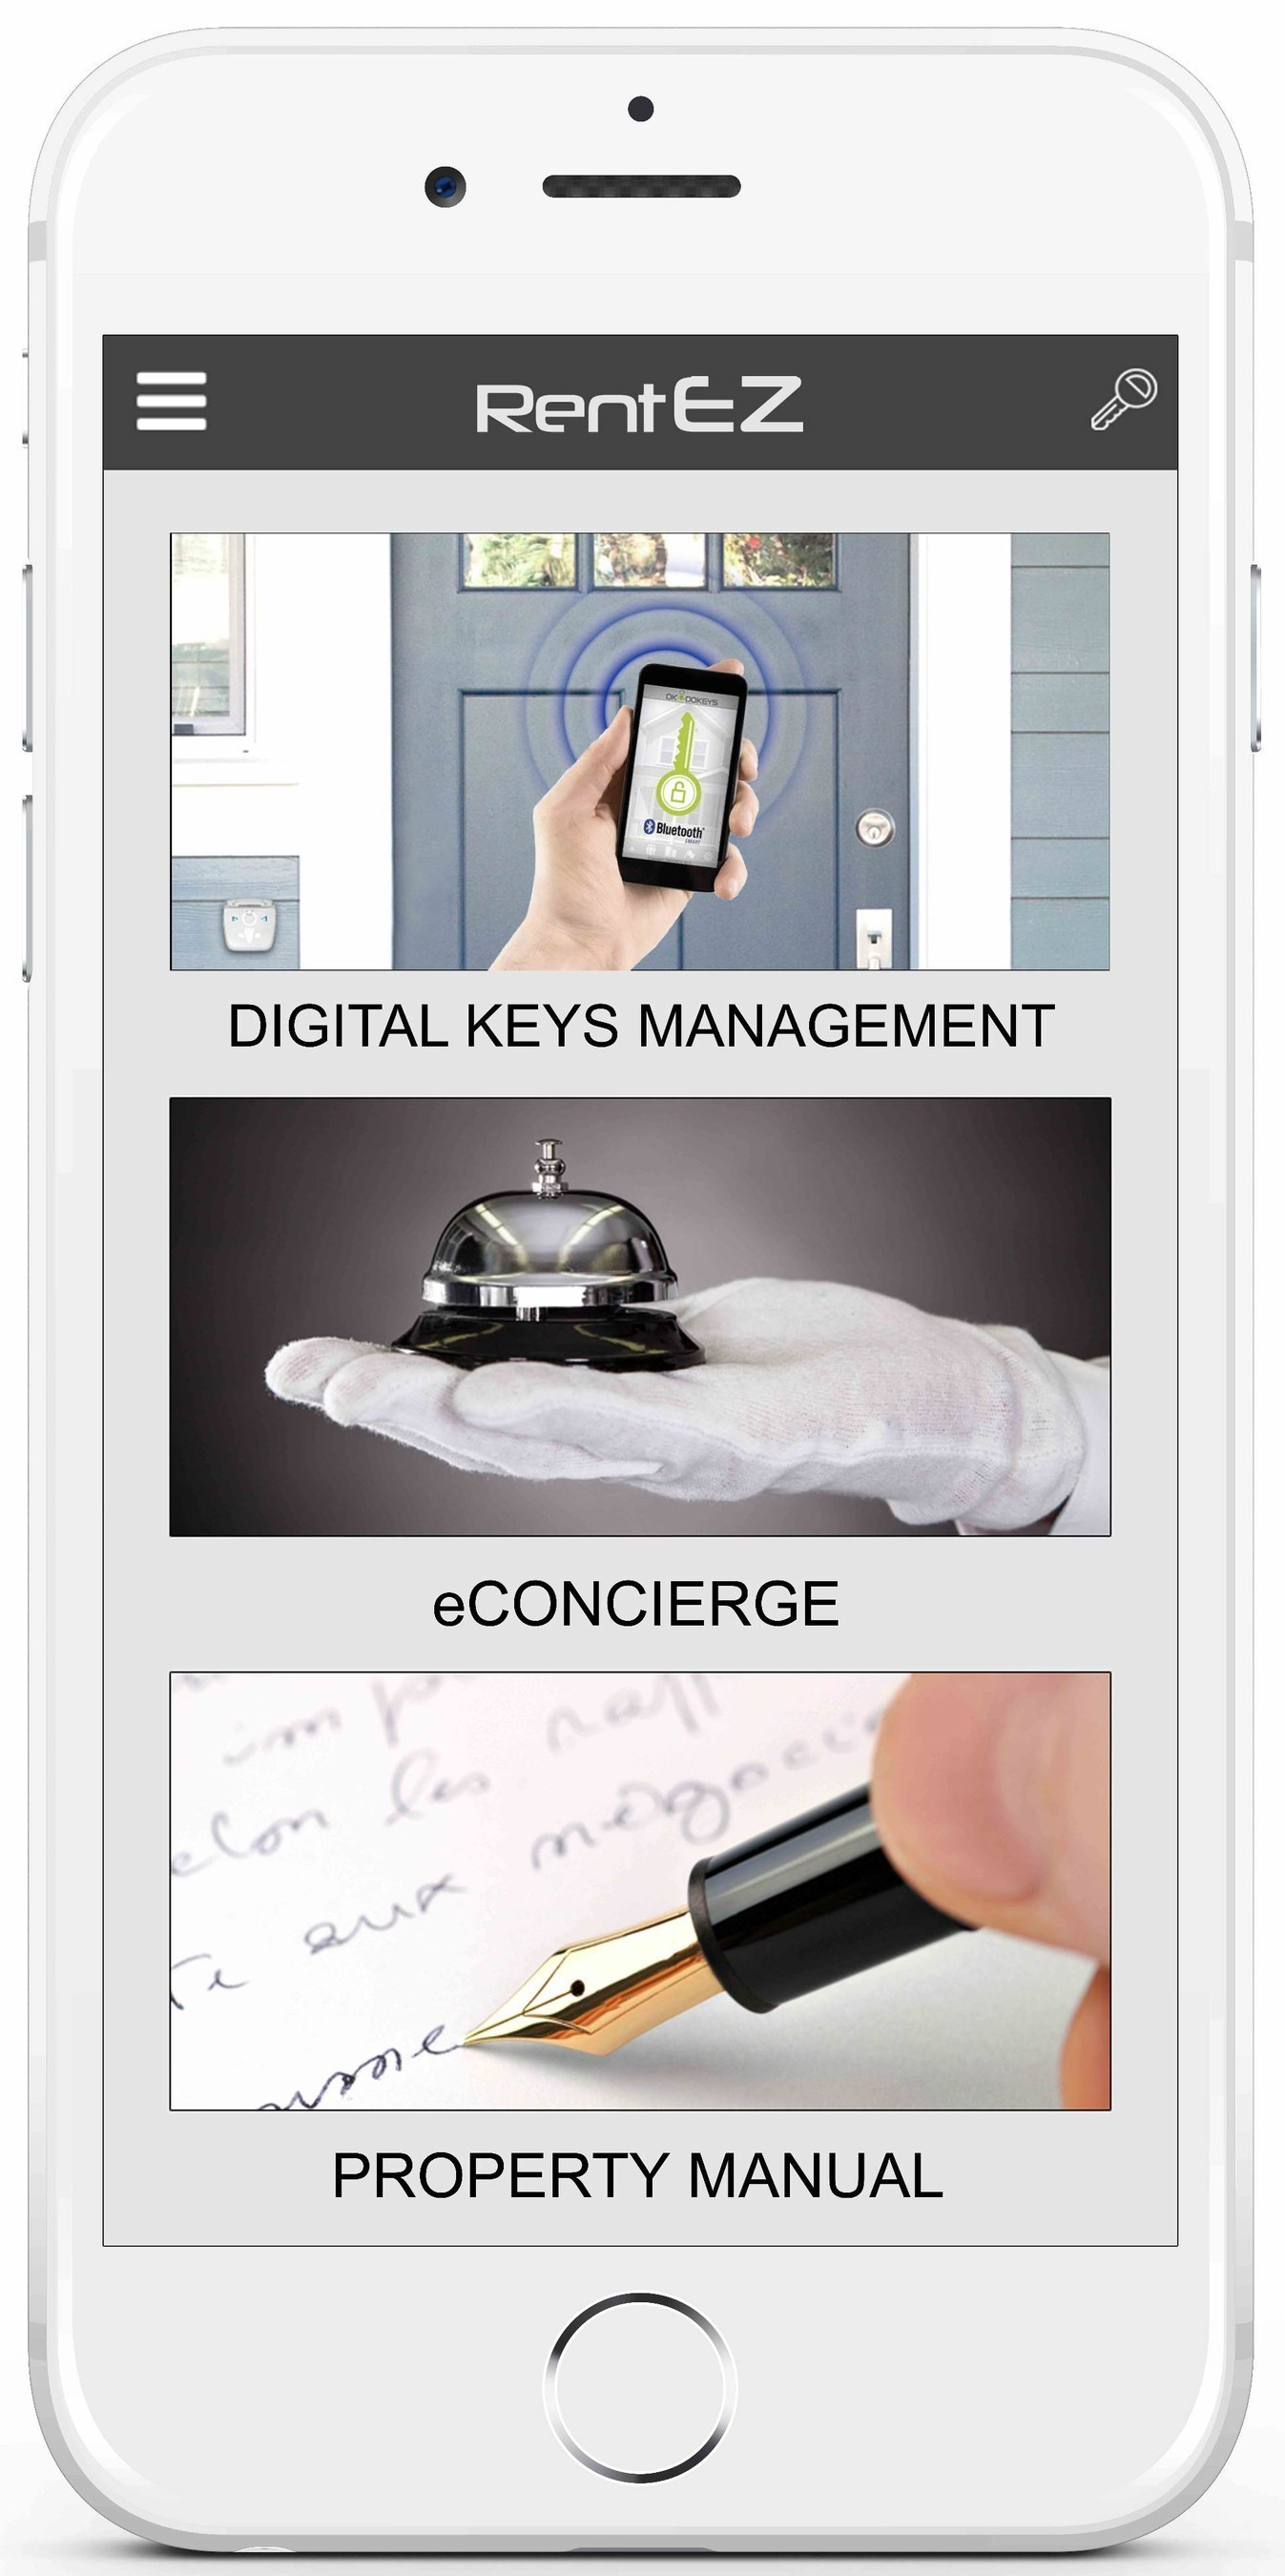 The RentEZ app from OKIDOKEYS makes professional concierge services easy and affordable for vacation rentals ...